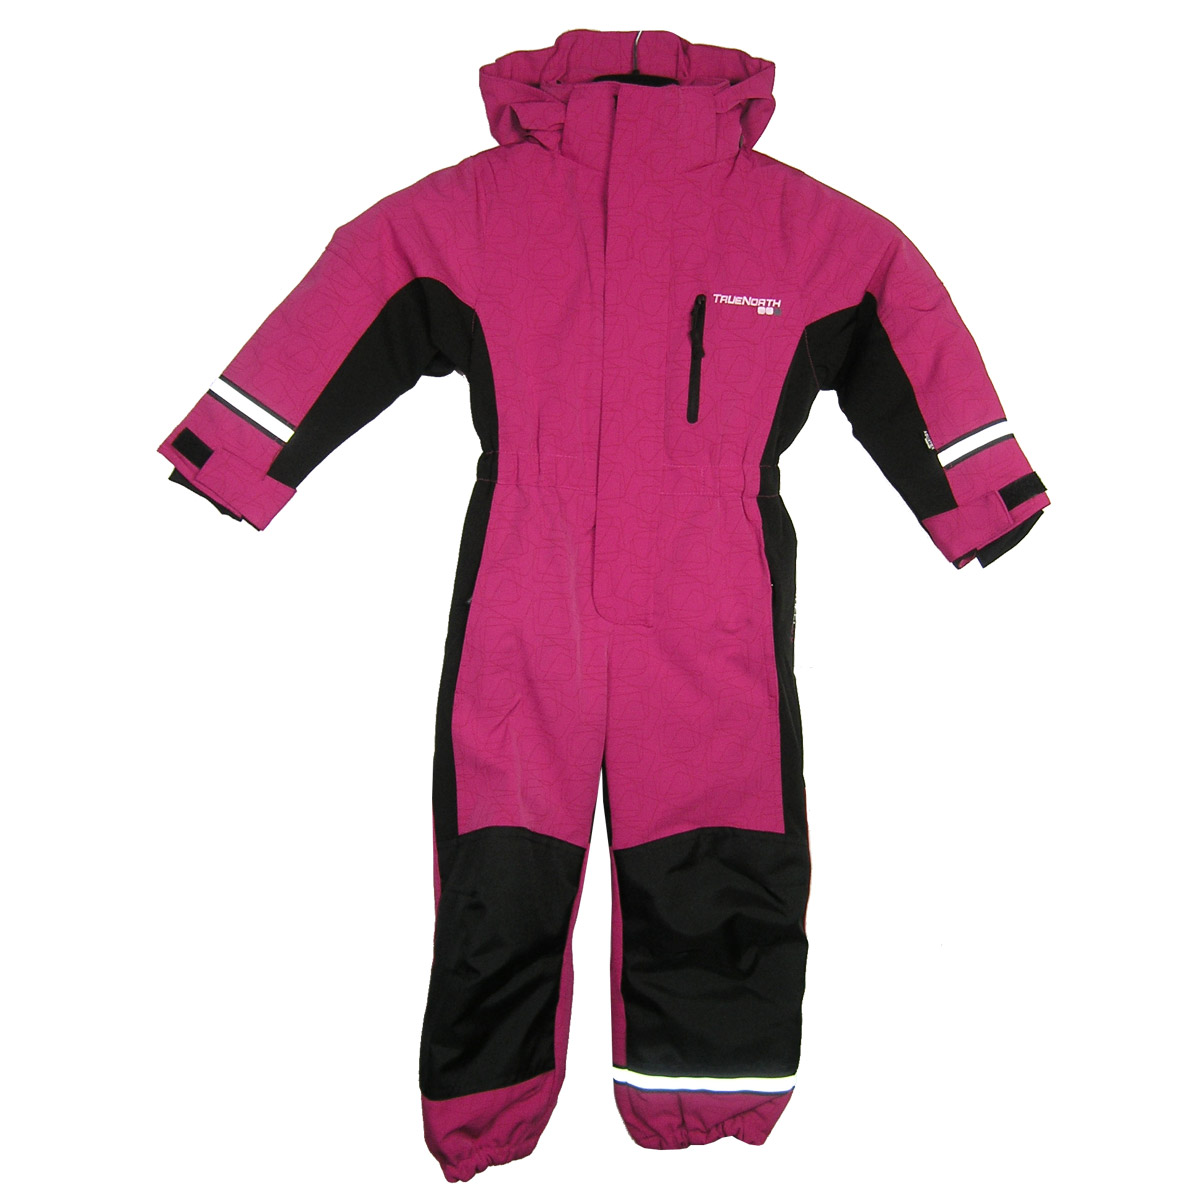 truenorth winter overall 2013 kinder schneeanzug skianzug snowboardanzug 7532203 ebay. Black Bedroom Furniture Sets. Home Design Ideas